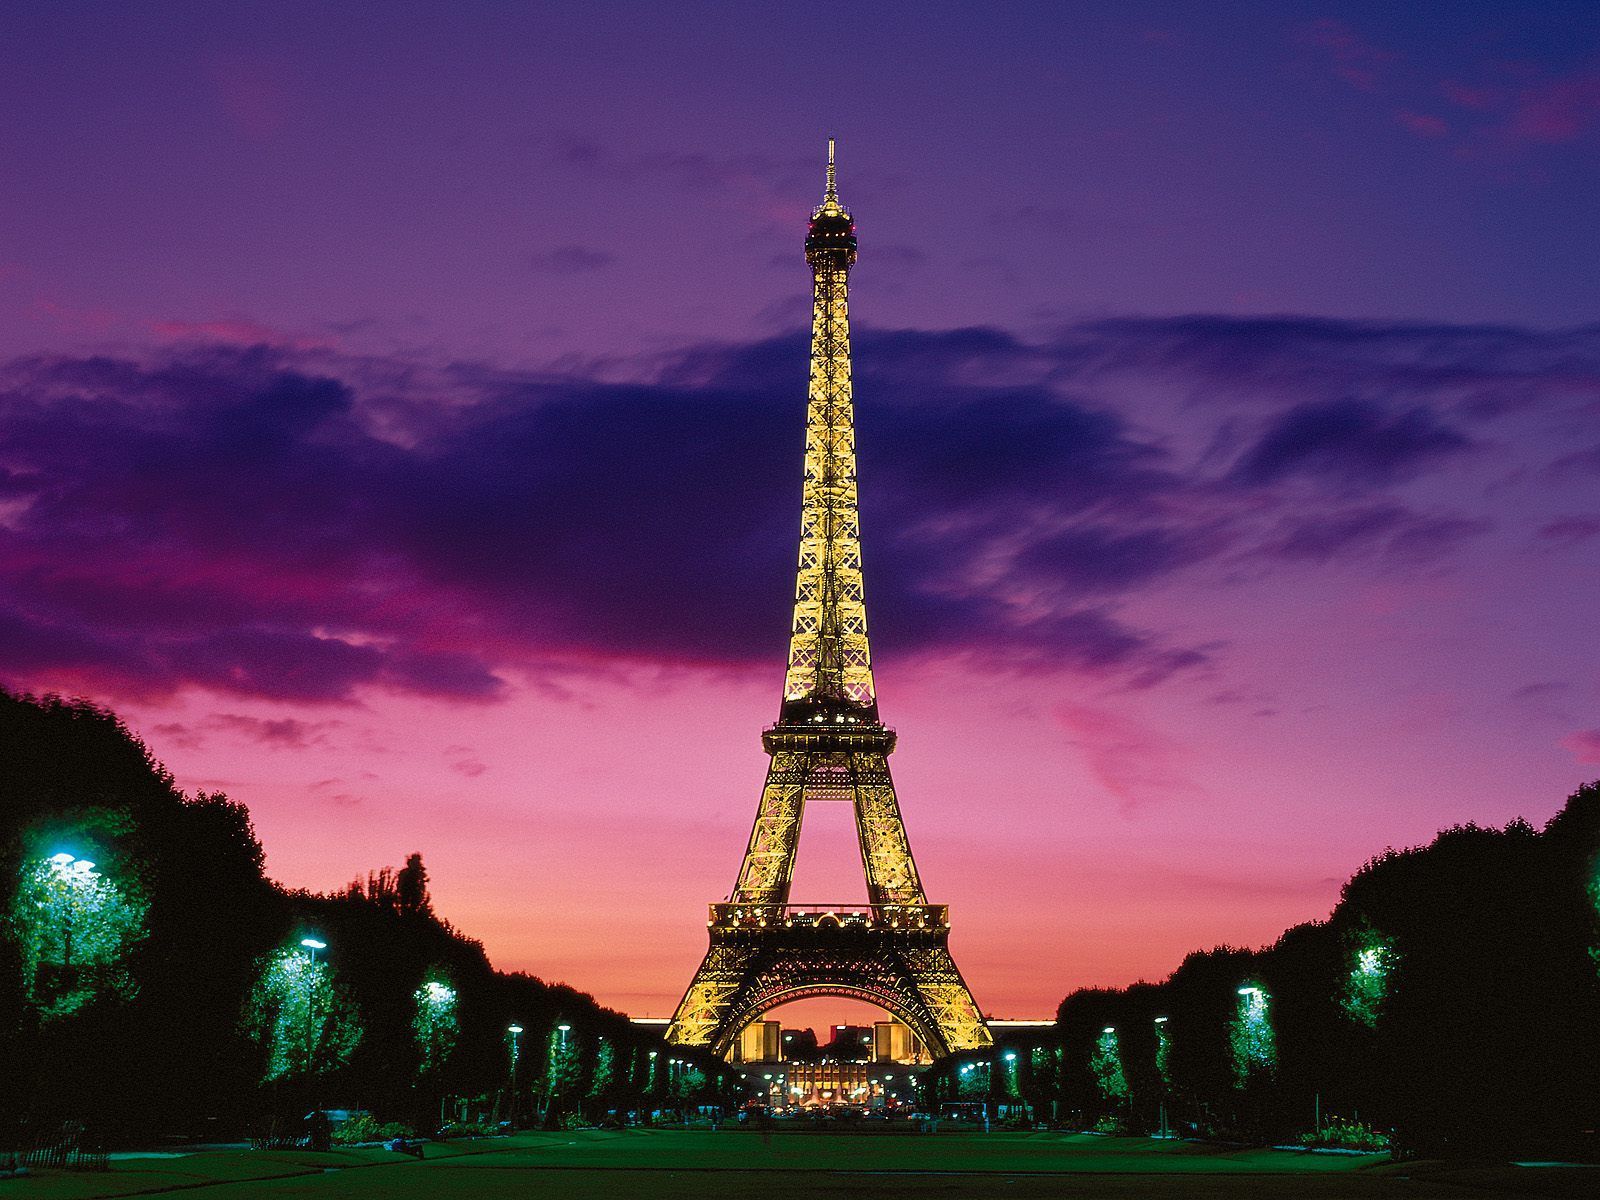 Hotels near Paris